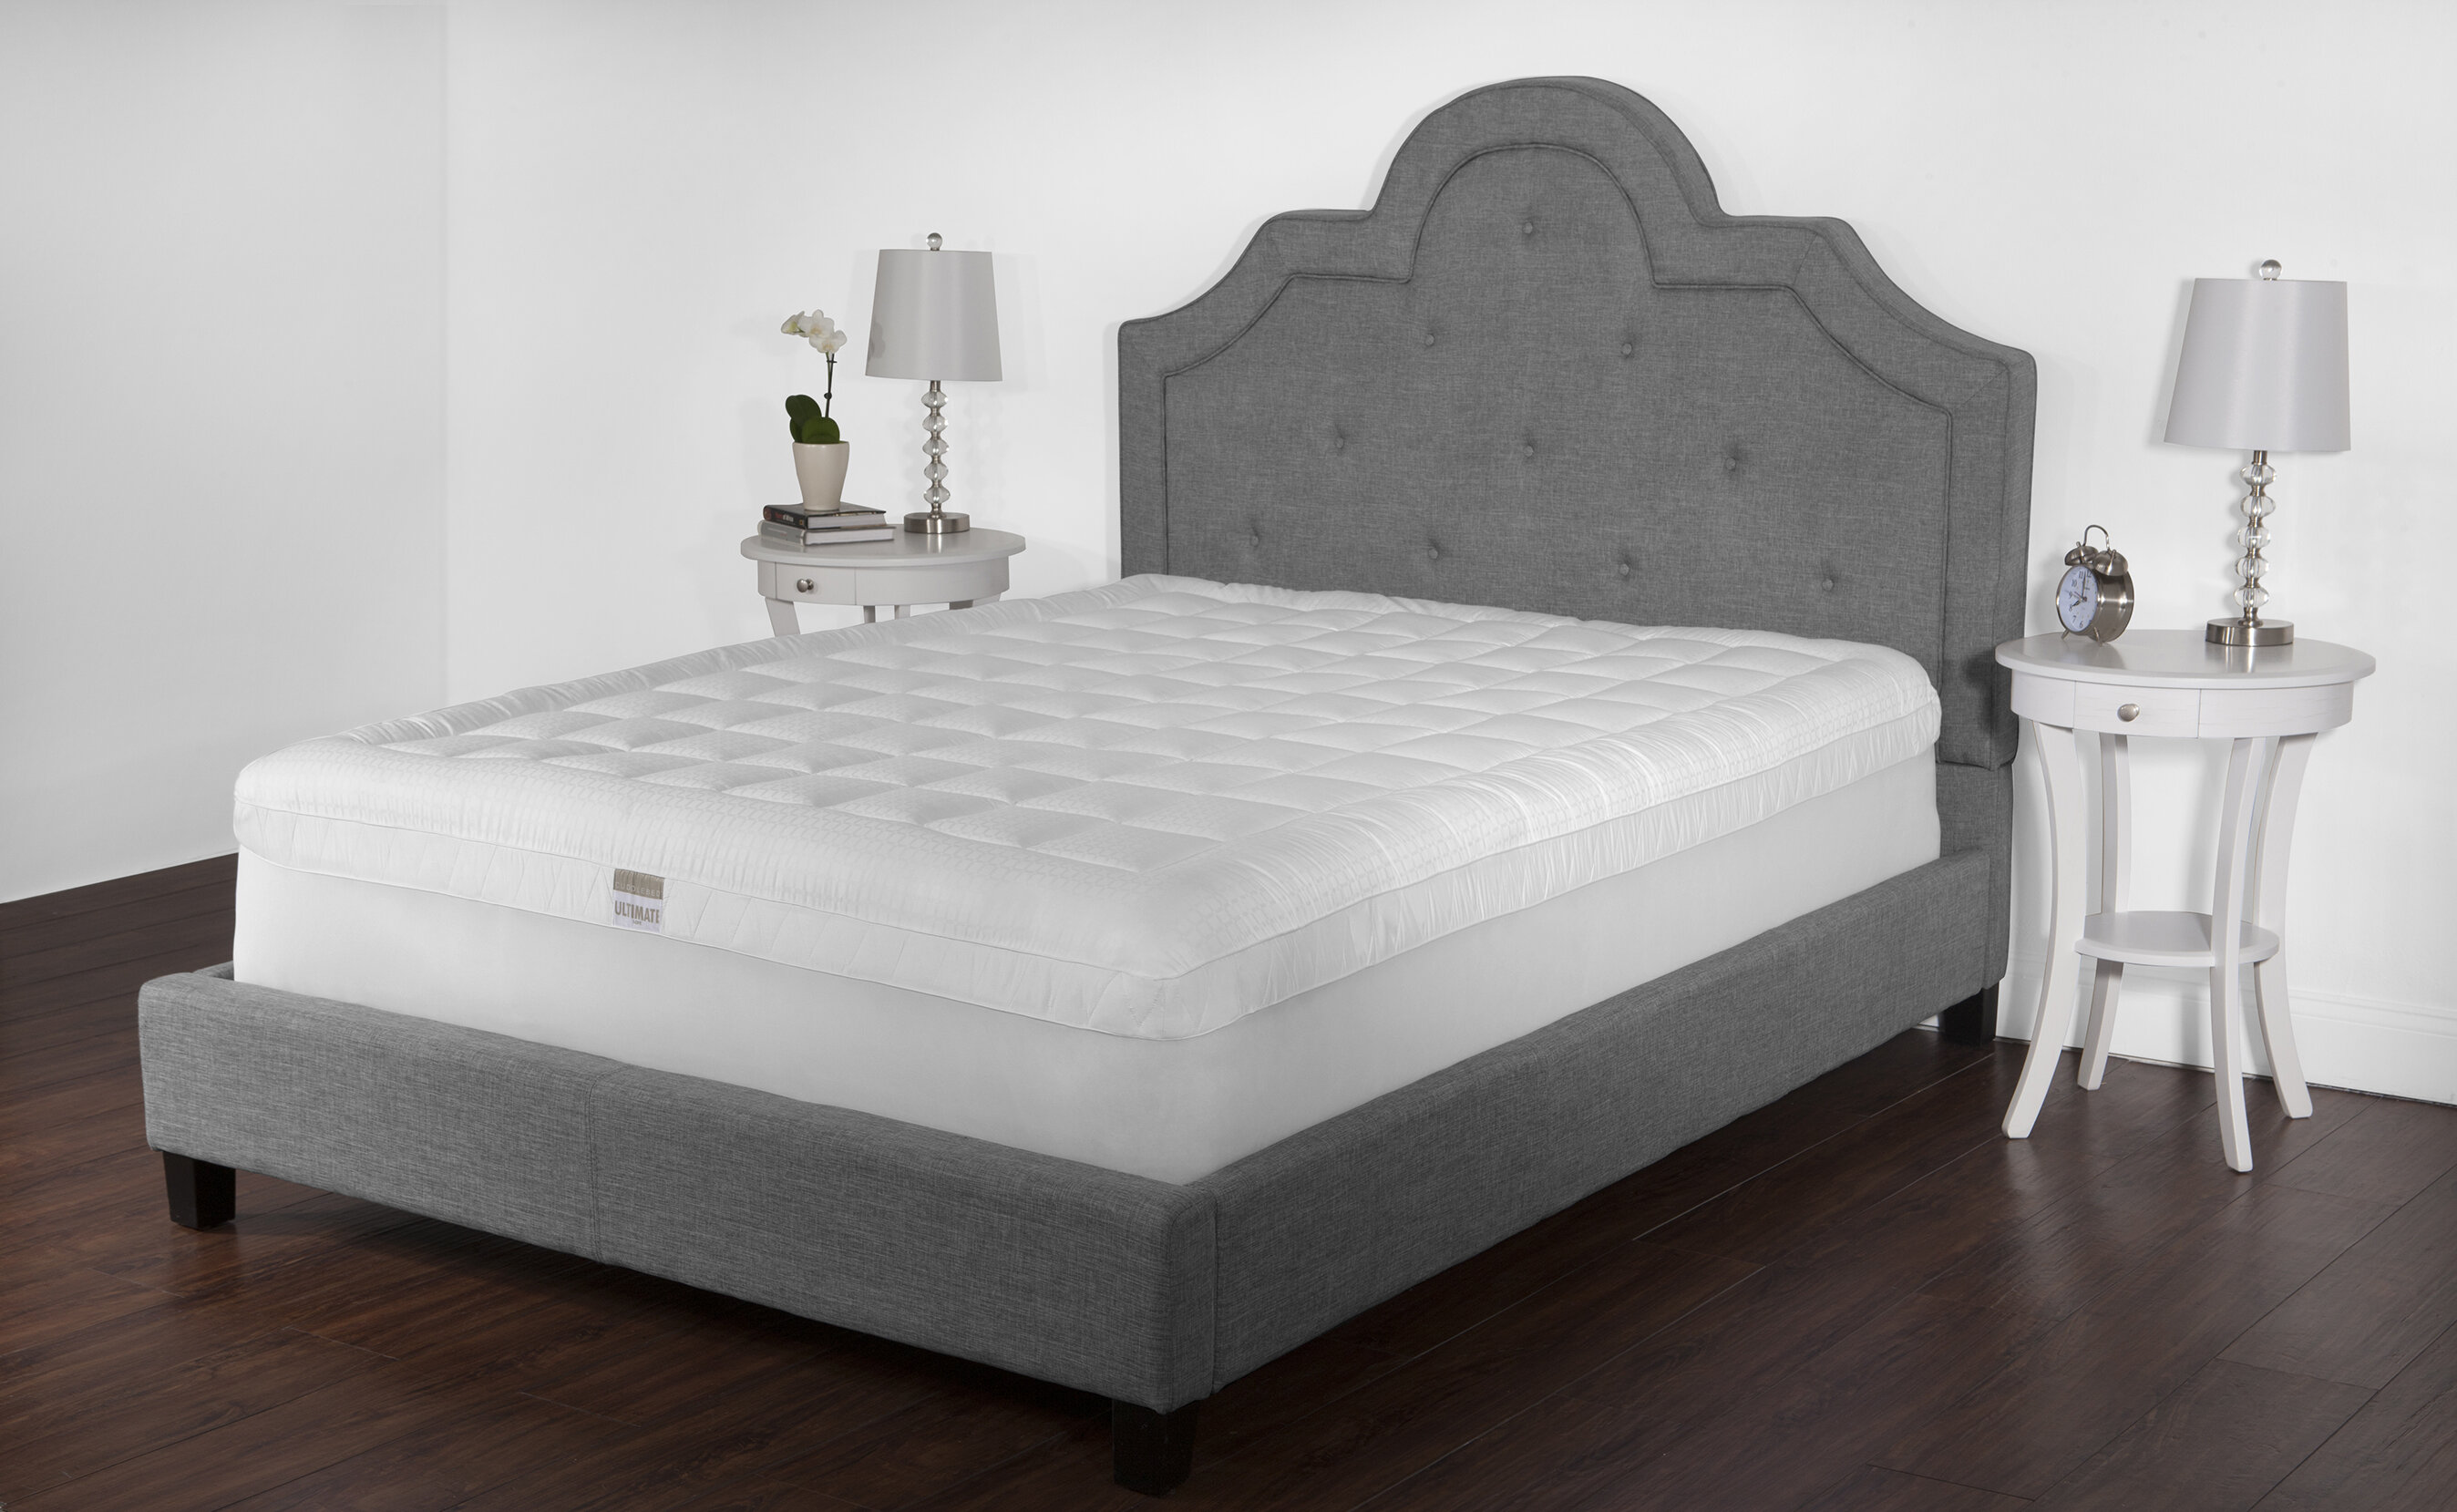 joss cuddlebed mattress pad topper bedding ultimate pdp reviews main